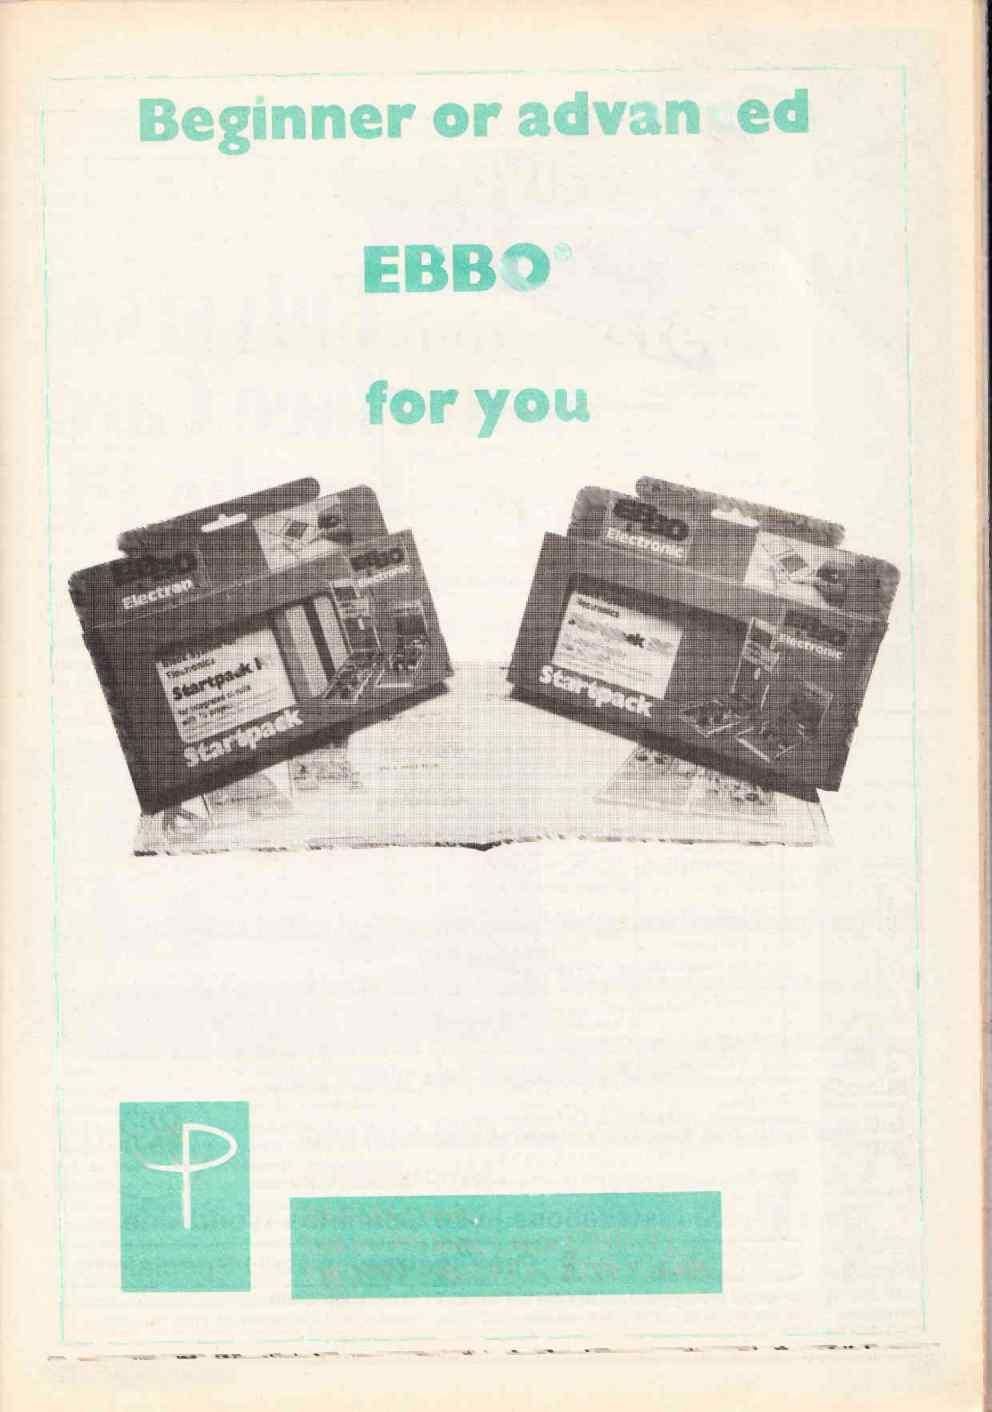 Beginner or advanced hobbyist EBBO is the right system for